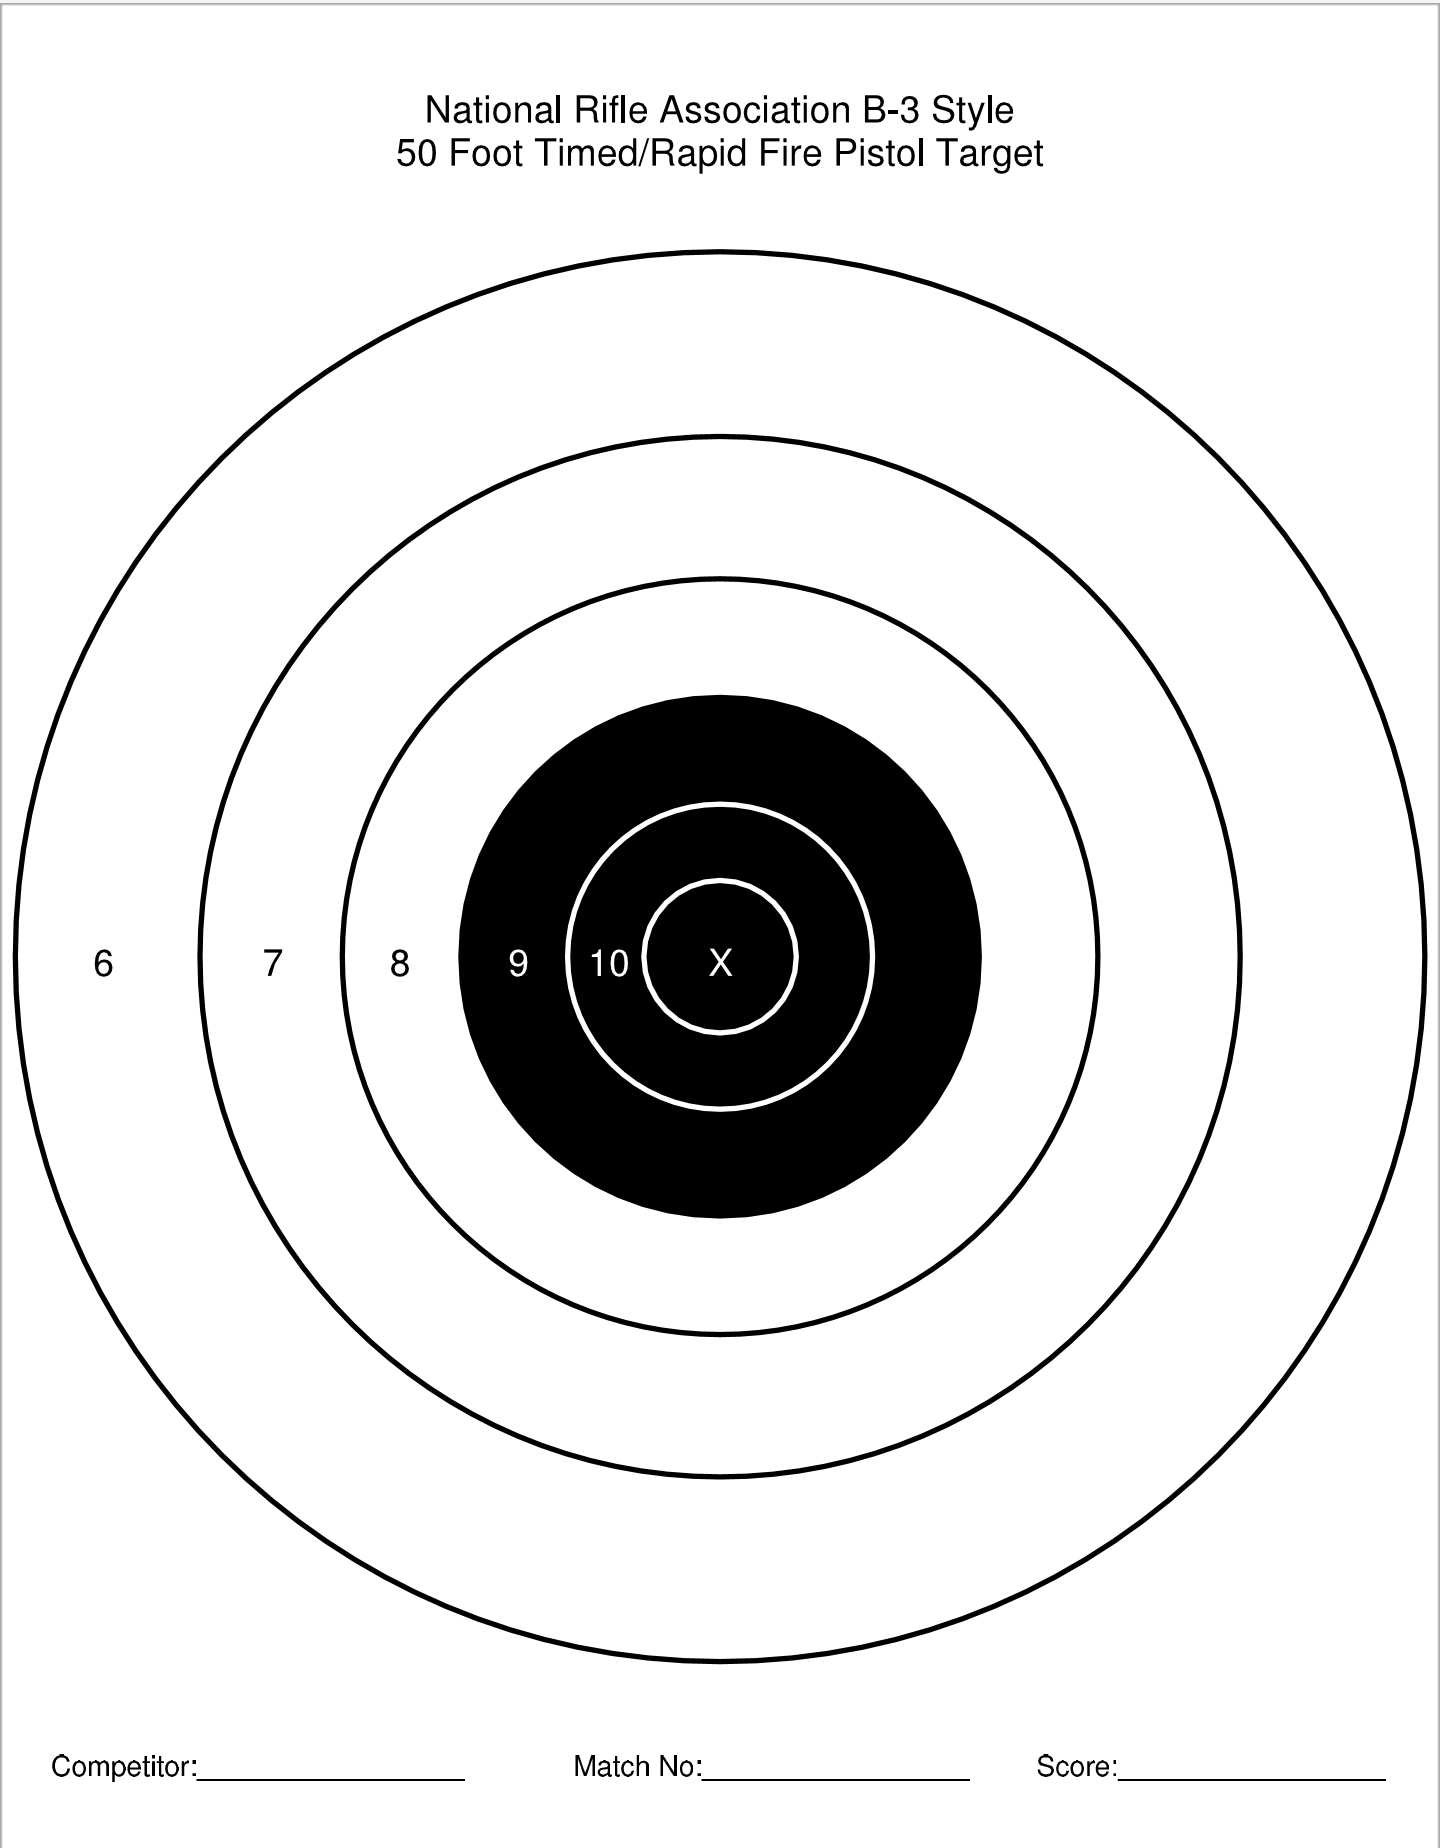 It's just a photo of Nra B-8 Target Printable throughout pdf